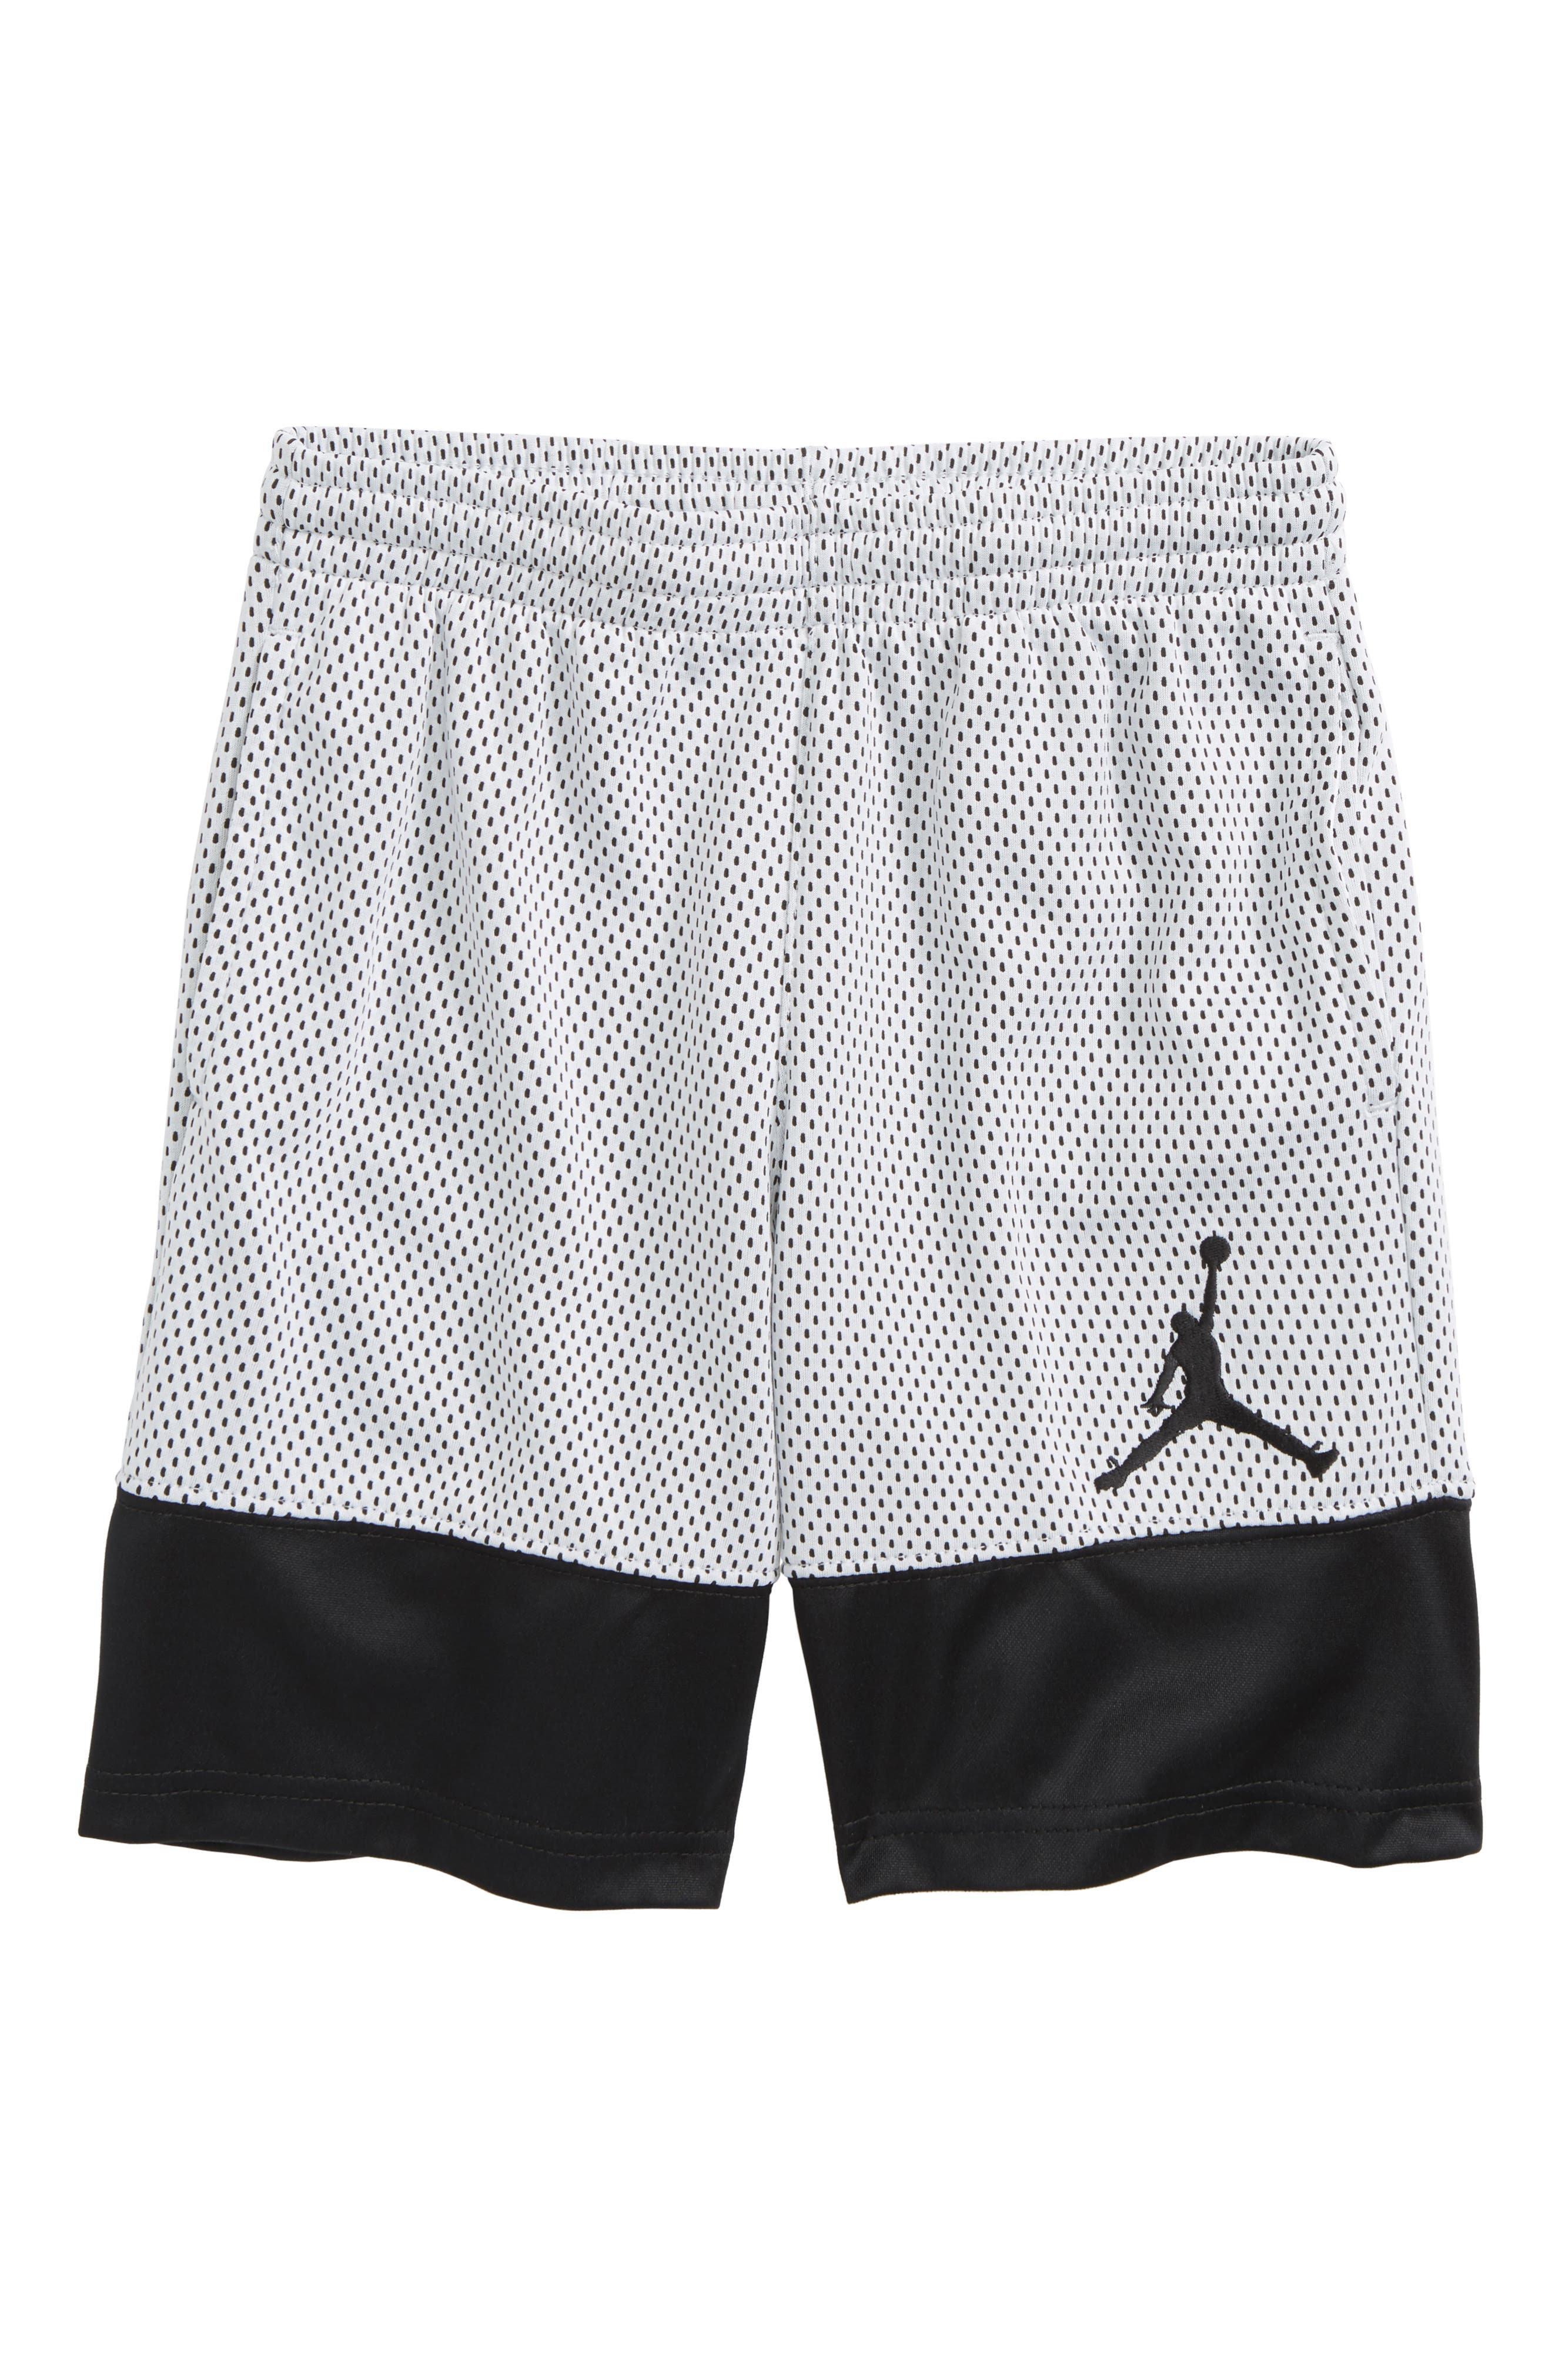 Jordan '90s Mesh Shorts,                             Main thumbnail 1, color,                             001